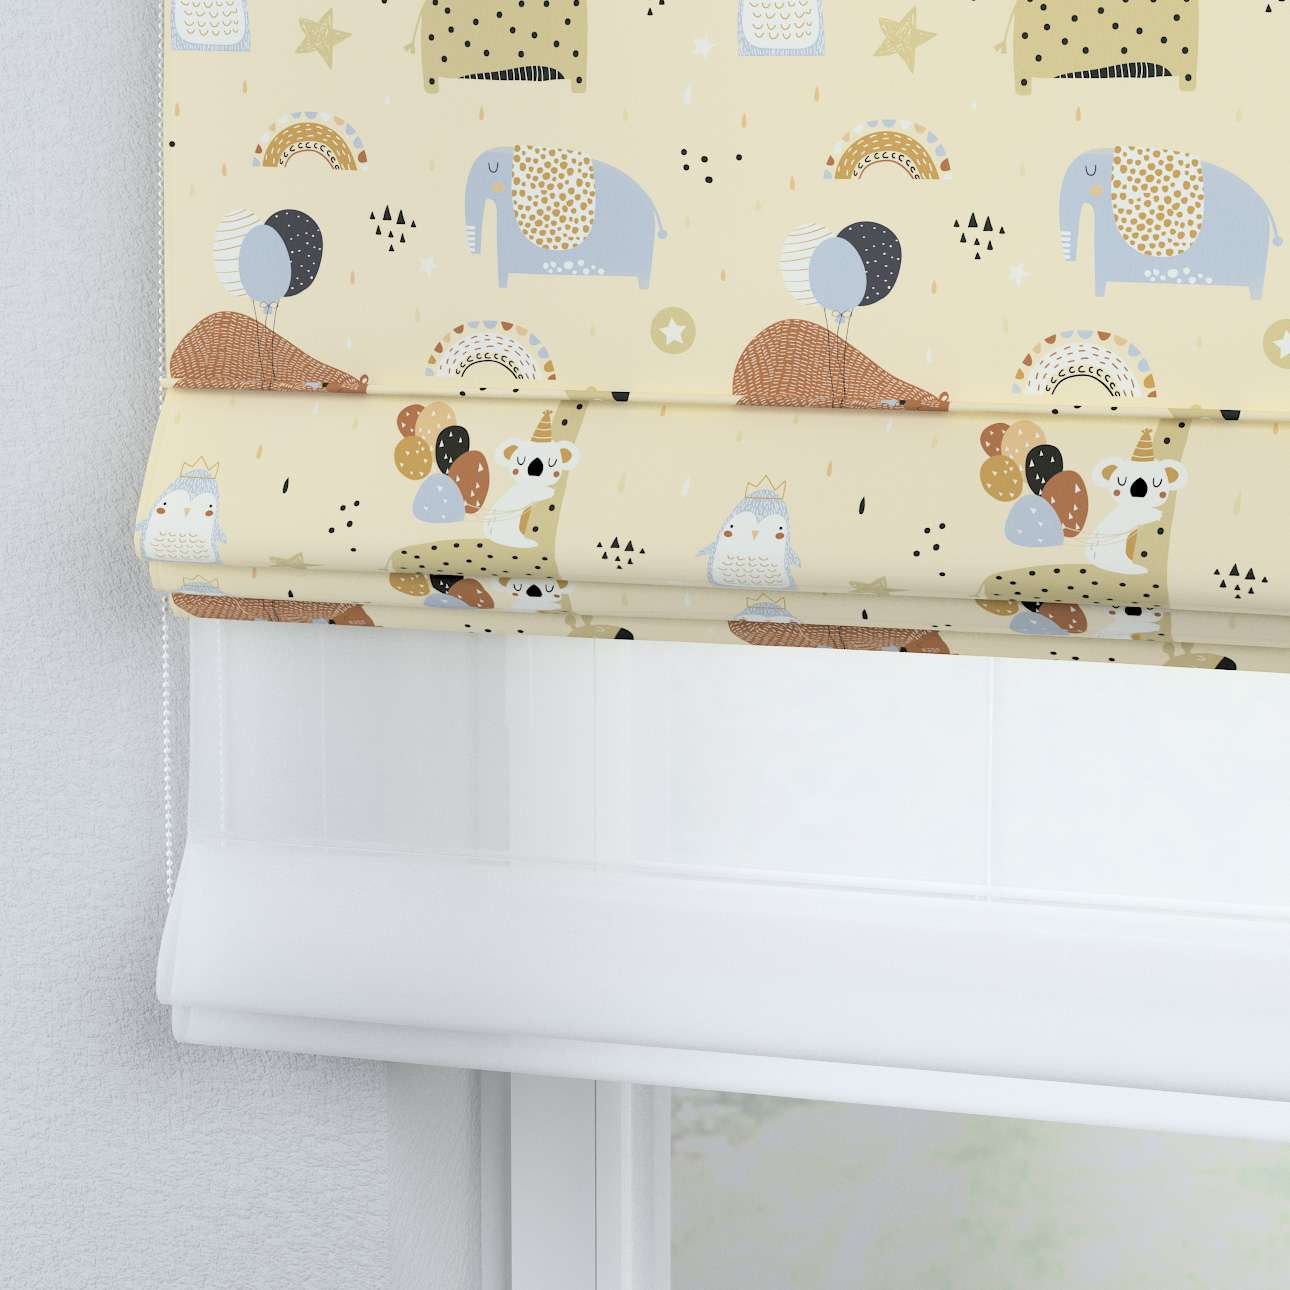 Voile and fabric roman blind (DUO II) in collection Magic Collection, fabric: 500-46